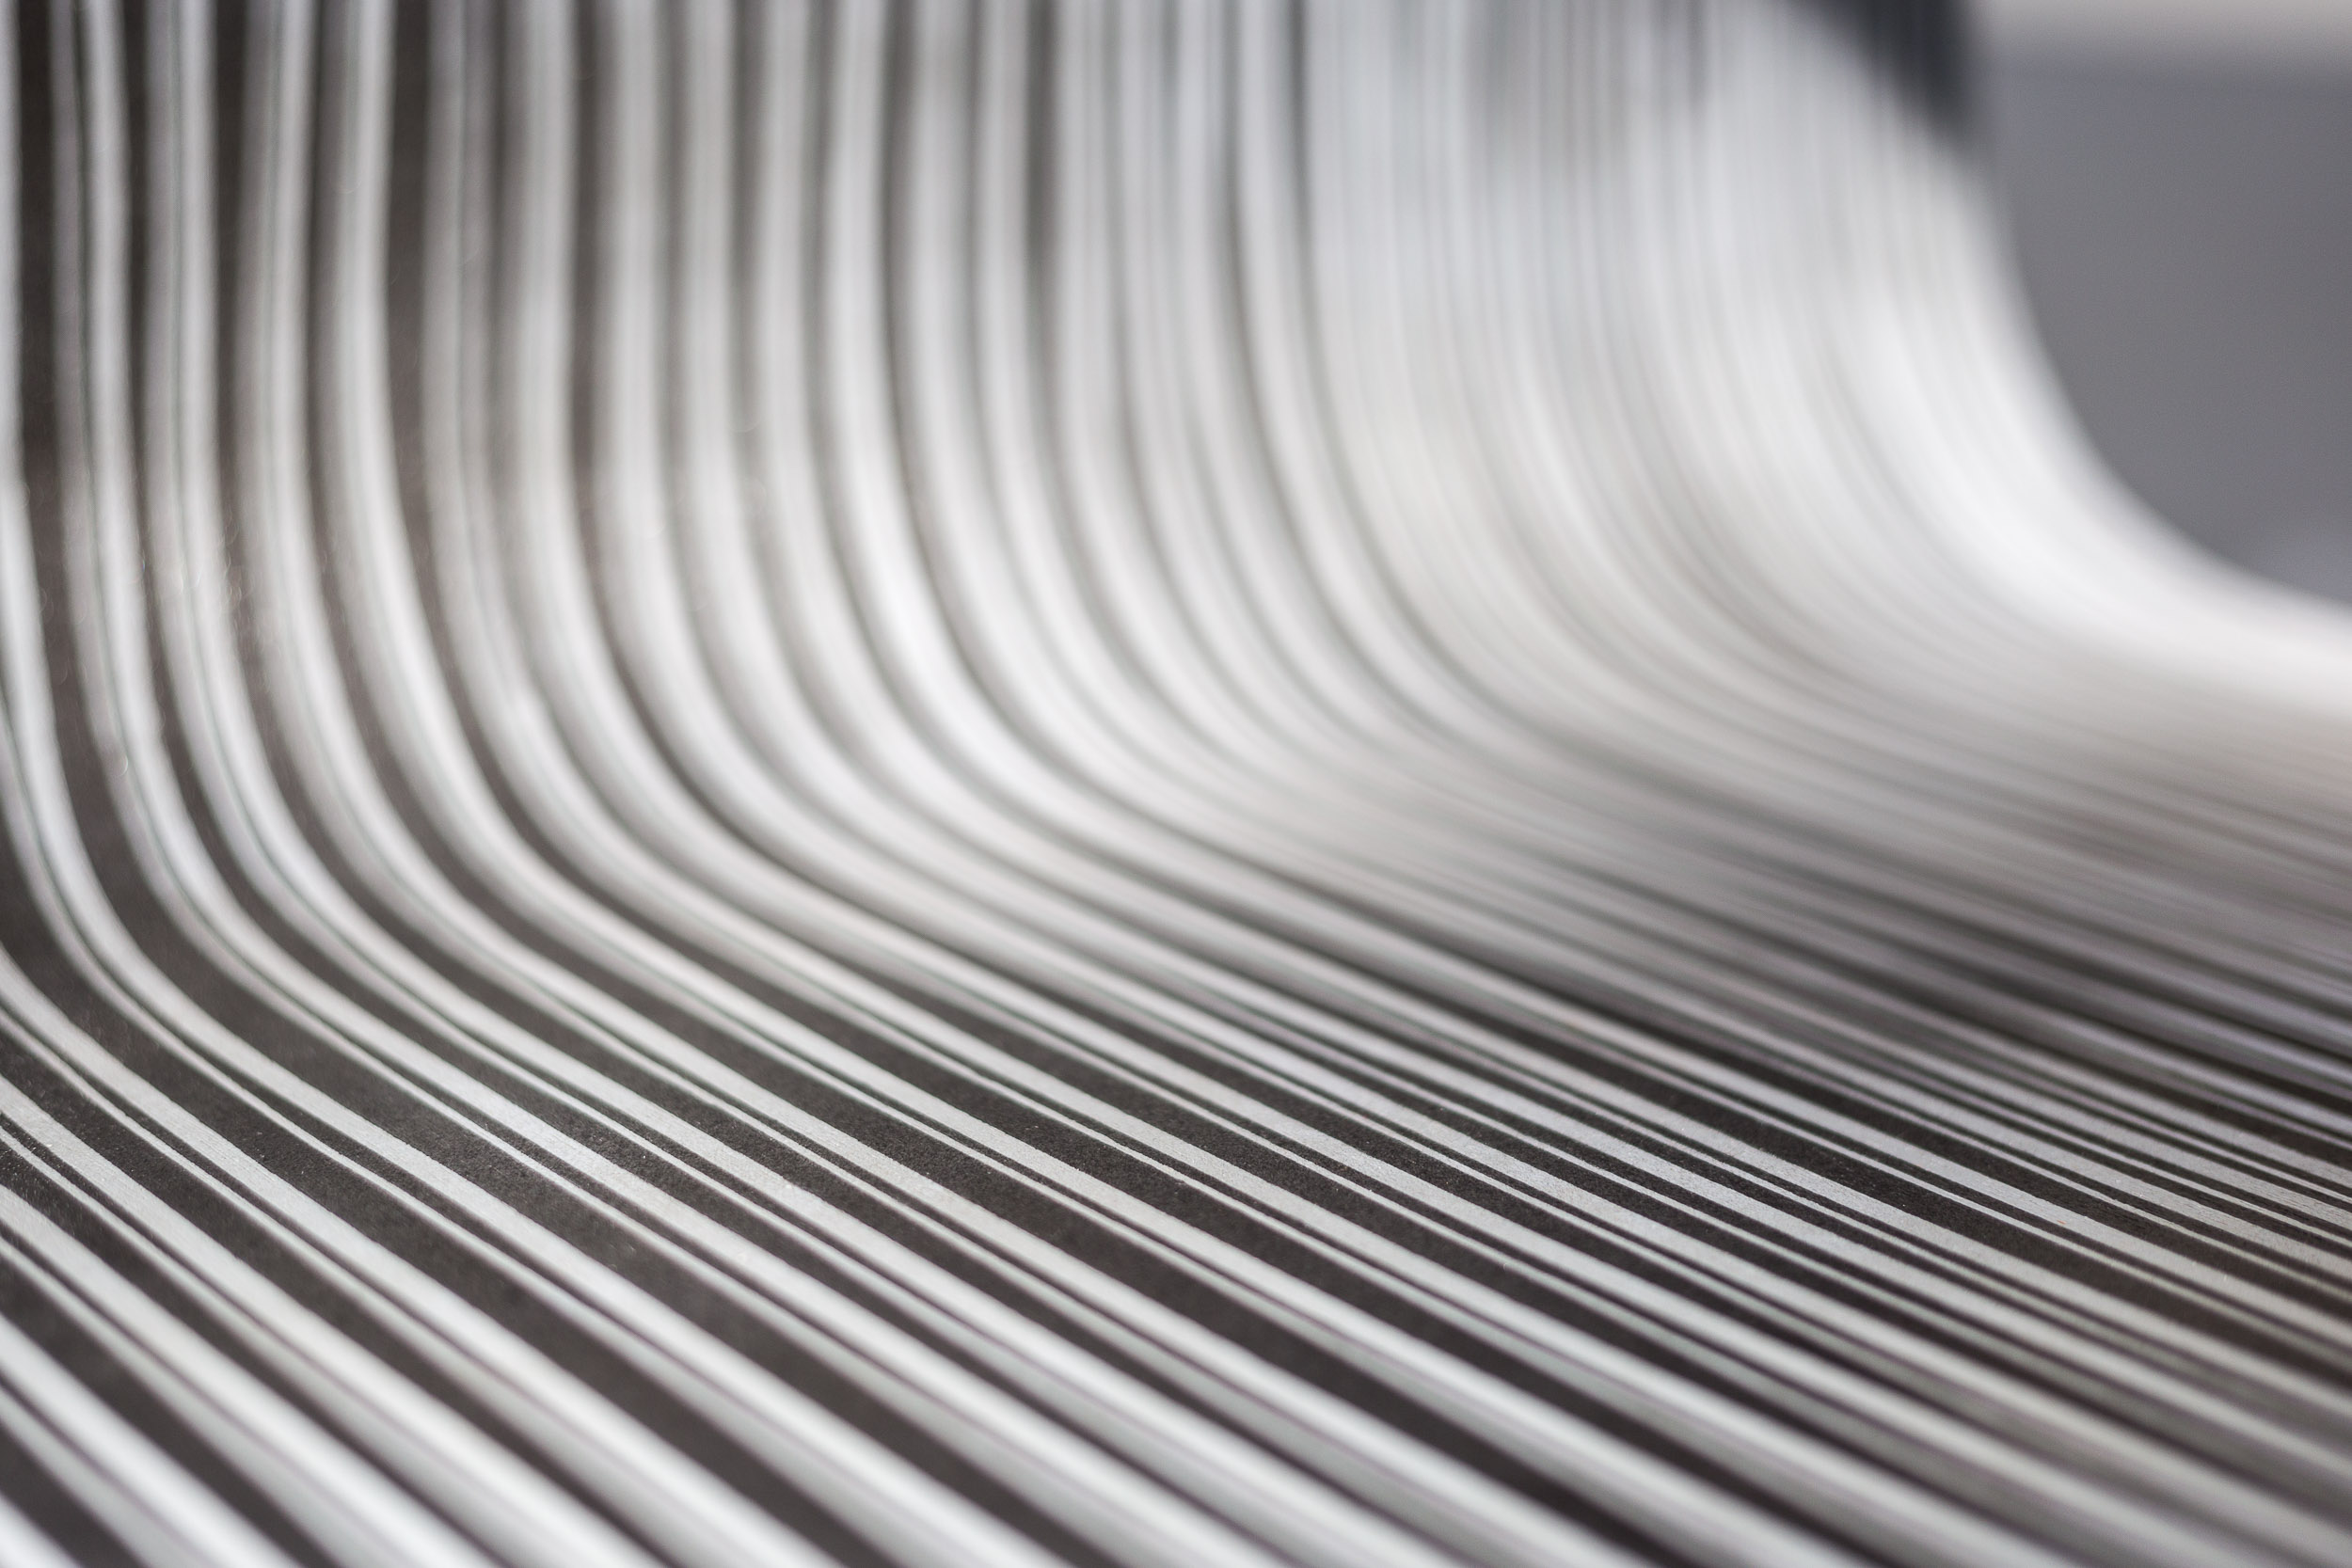 Fiona Banner,  Pinstripe Chair  (detail), 2015, graphite, vinyl, plywood, chair base, 148 x 52 x 50 cm  Photo: Kilian Bannwart